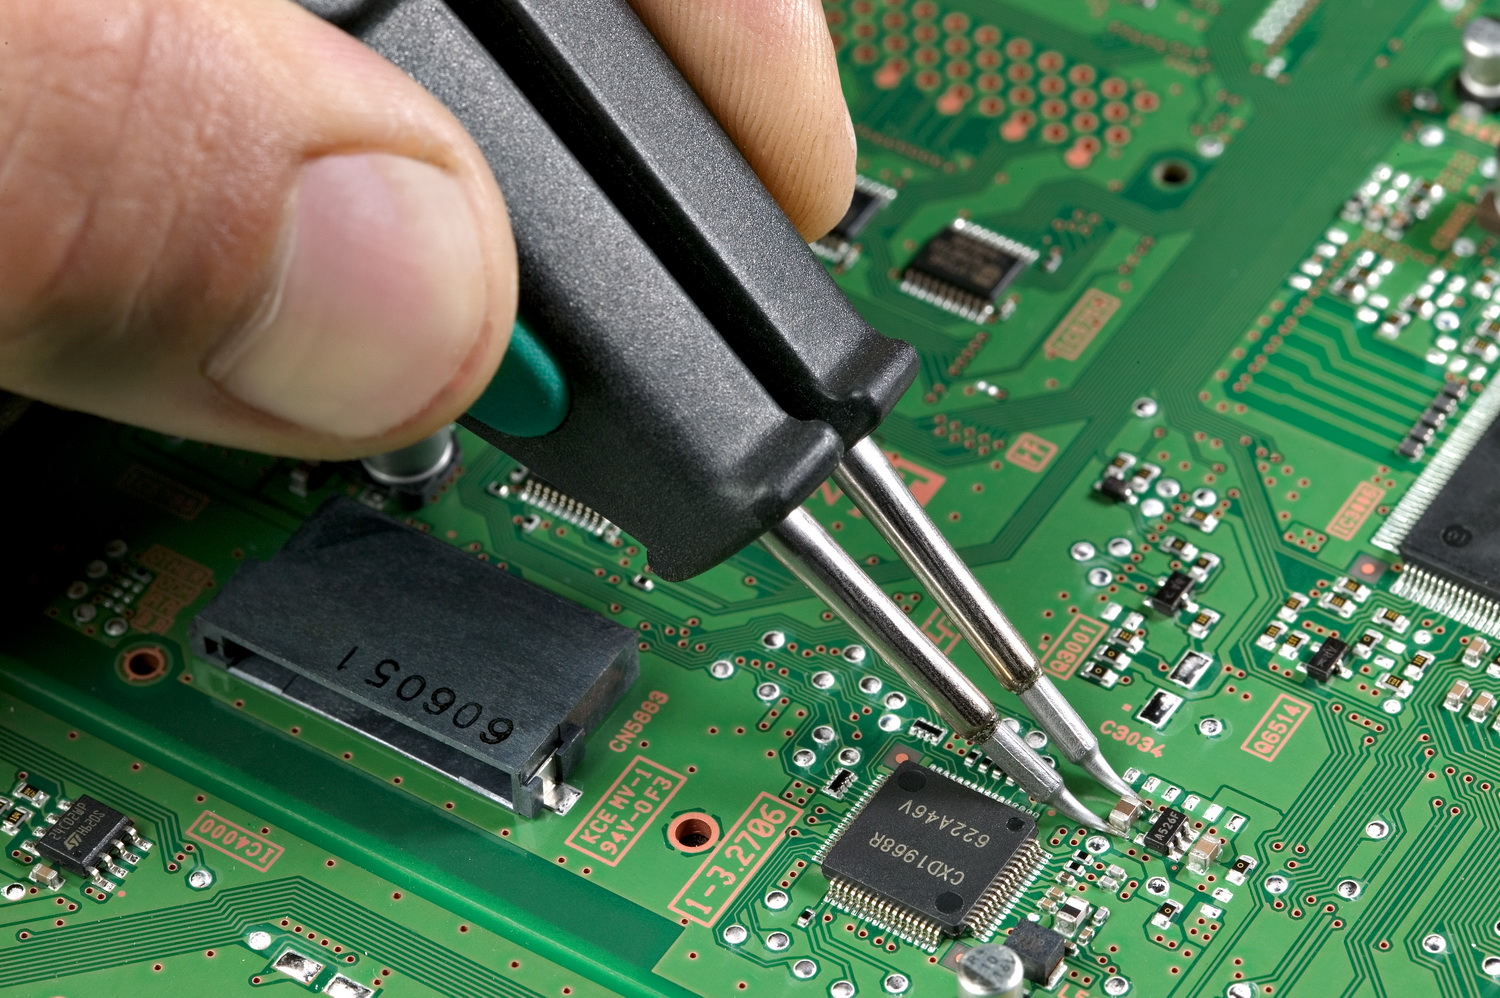 Soldering a 0805